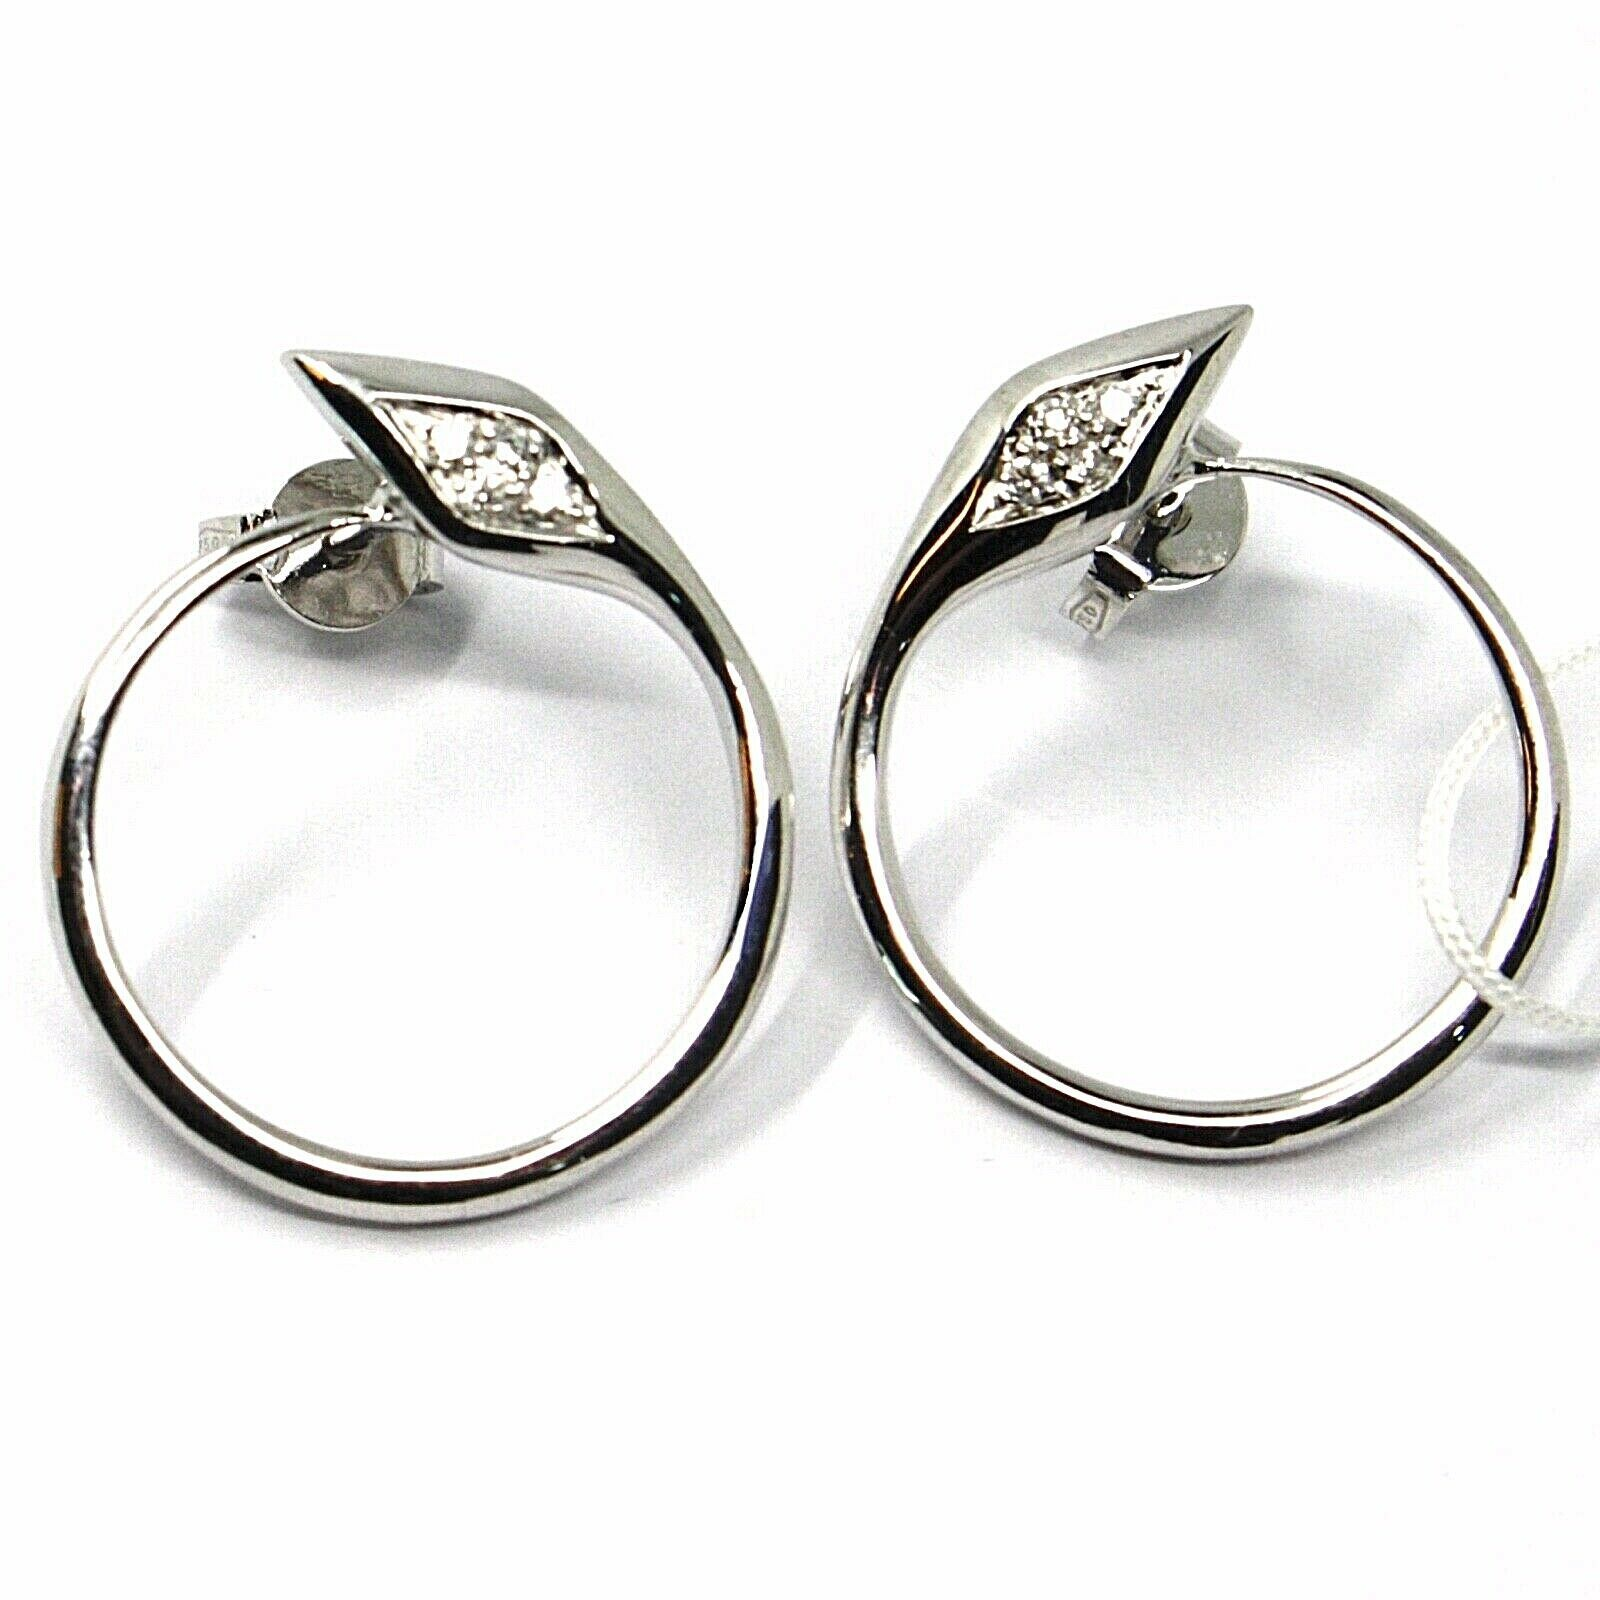 SOLID 18K WHITE GOLD EARRINGS, CIRCLE, SNAKE, WITH DIAMONDS, 20mm DIAMETER